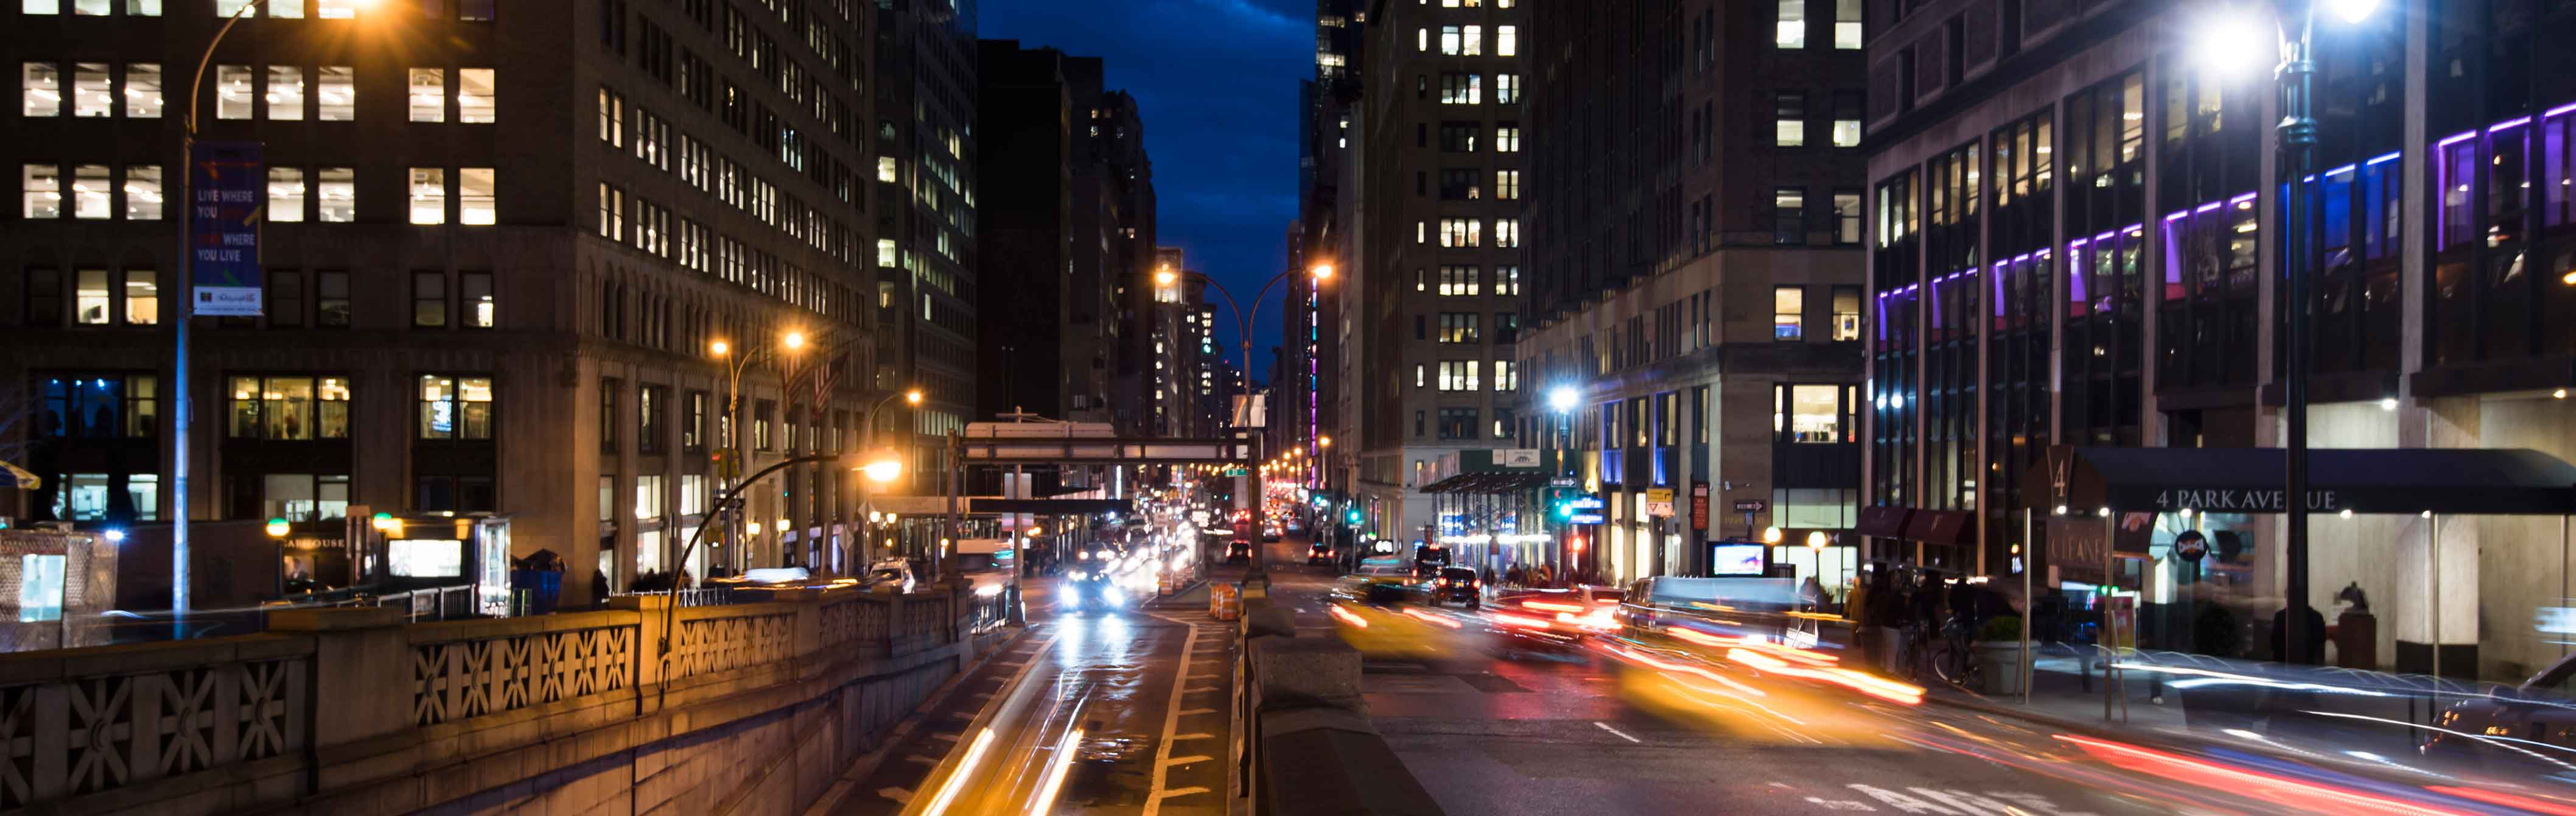 Night View of Park Avenue